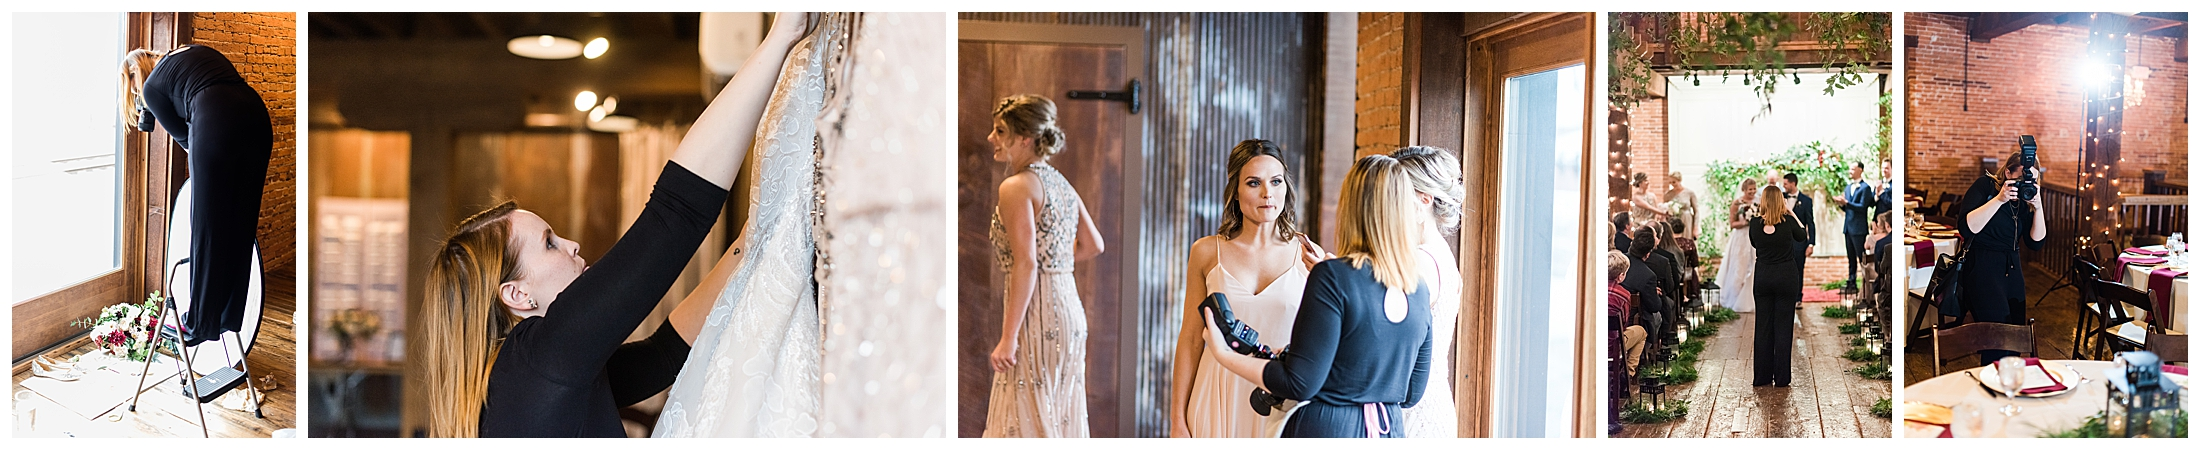 when-to-feed-your-wedding-photographer-7.jpg